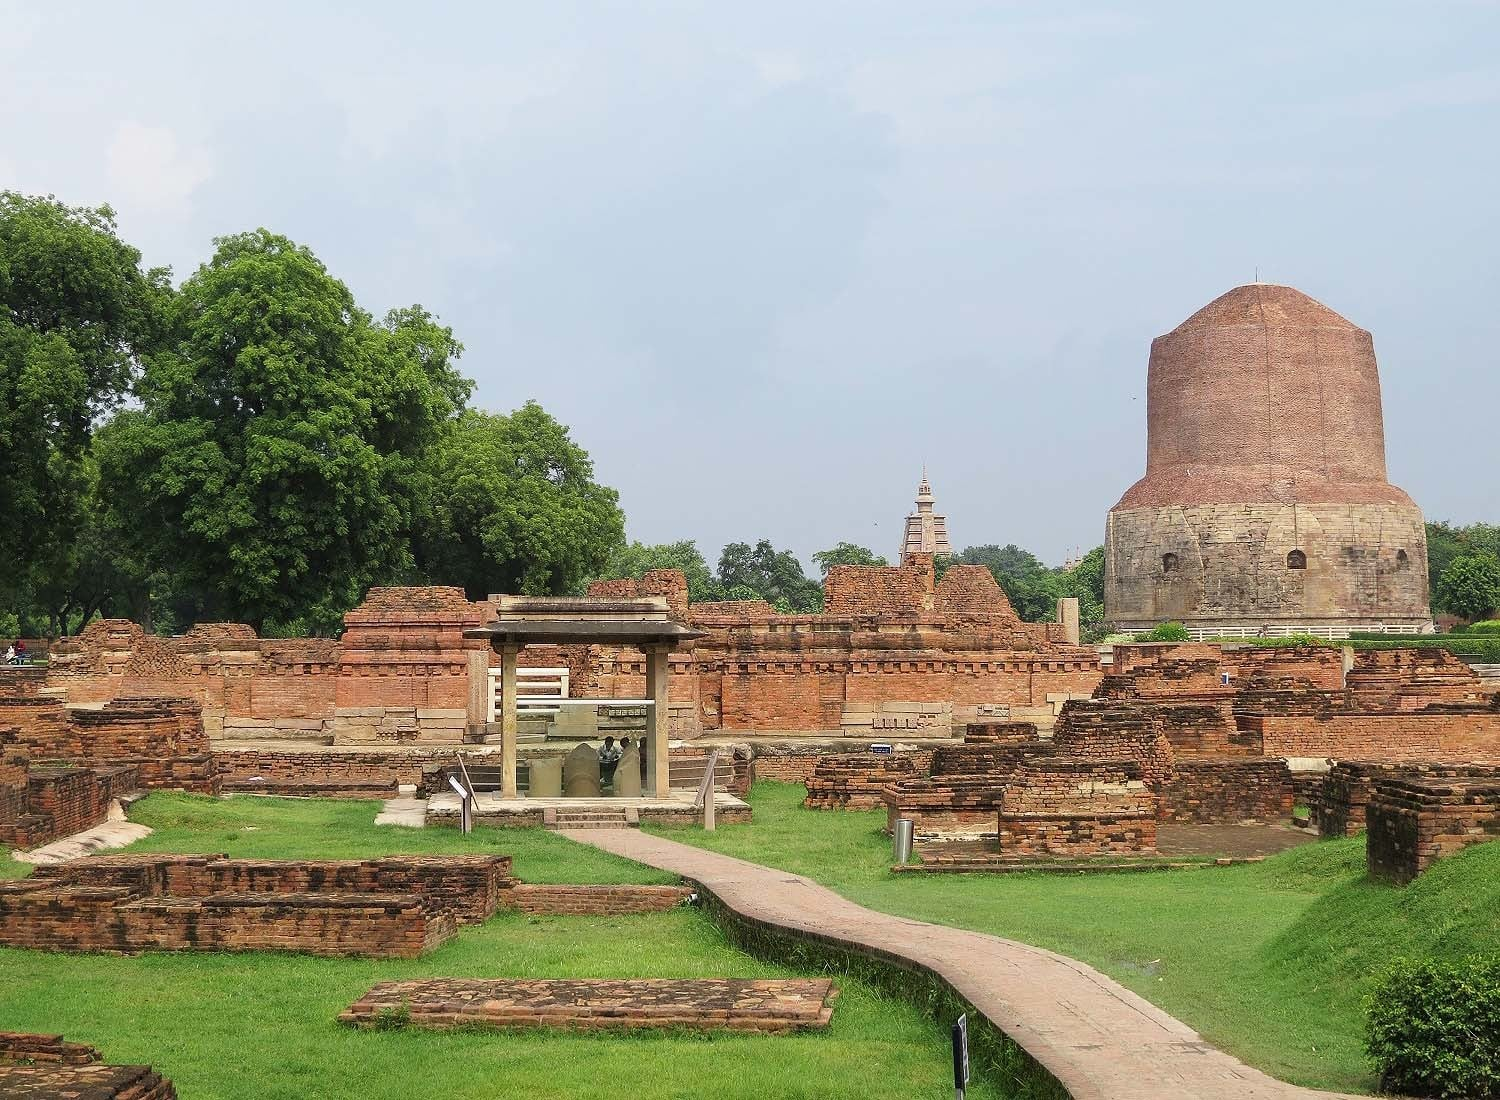 Ruins and a Stupa in Sarnath